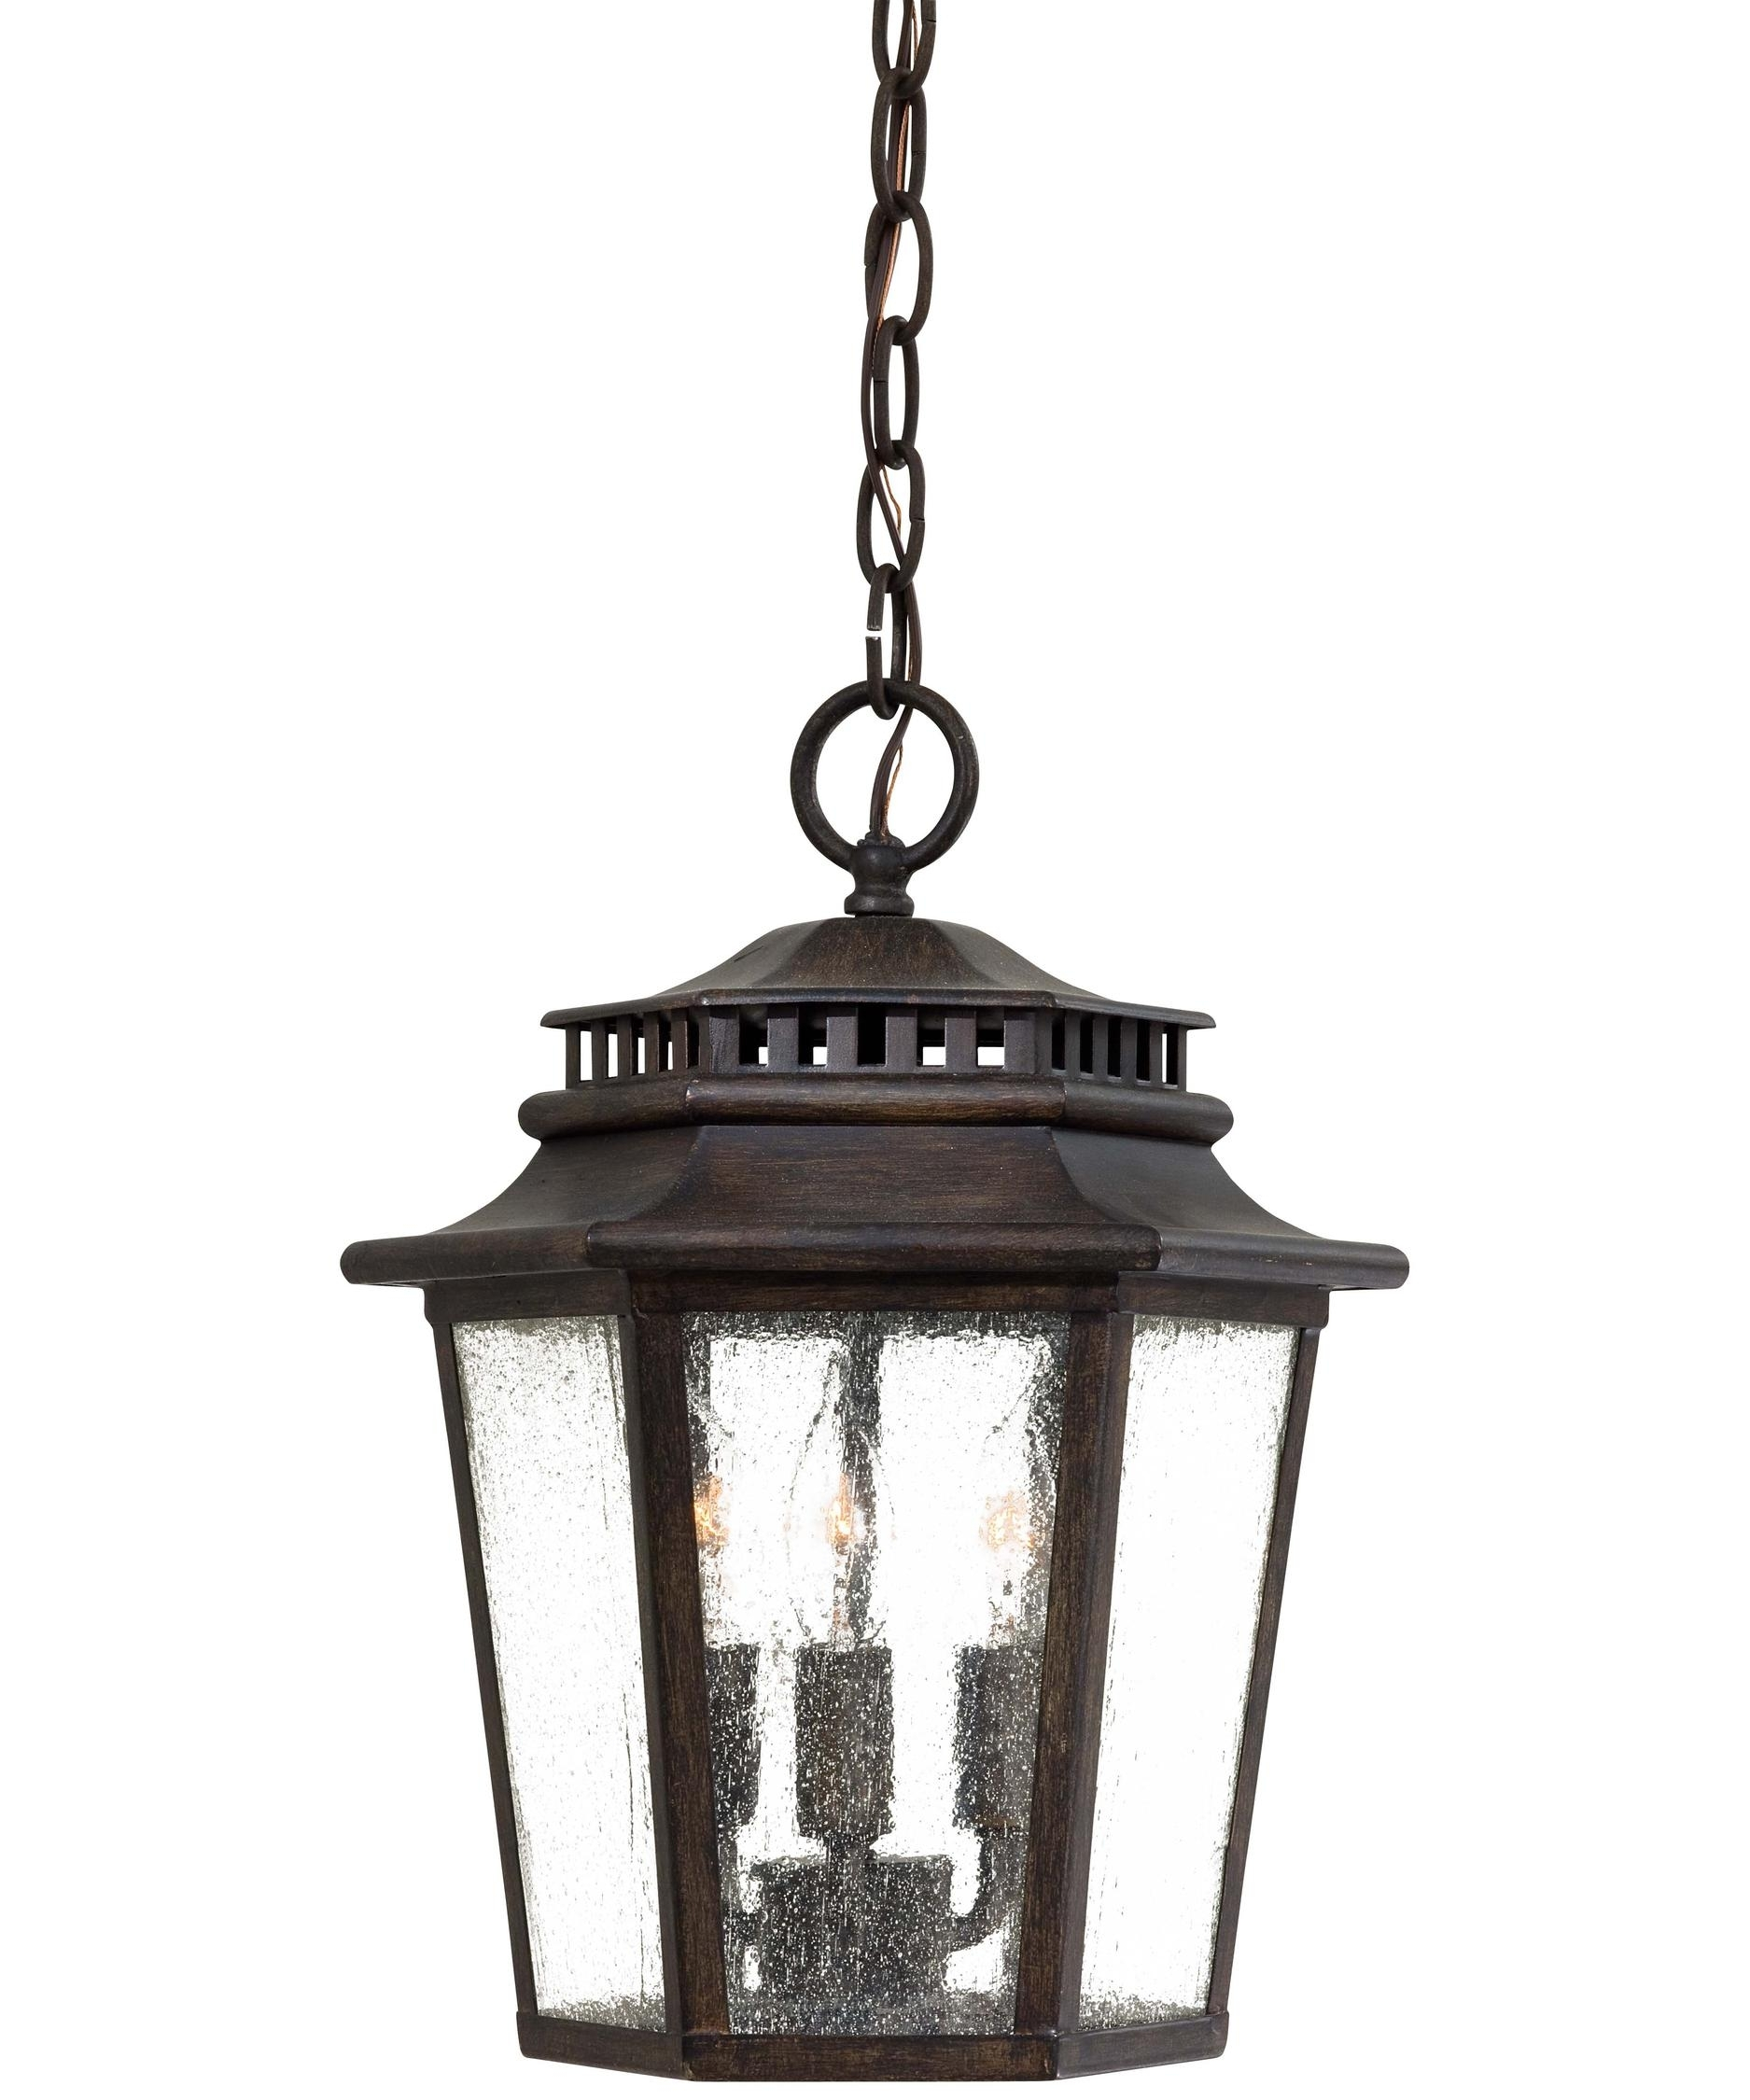 Minka Lavery 8274 Wickford Bay 11 Inch Wide 3 Light Outdoor Hanging With Outdoor Hanging Ceiling Lights (View 7 of 15)